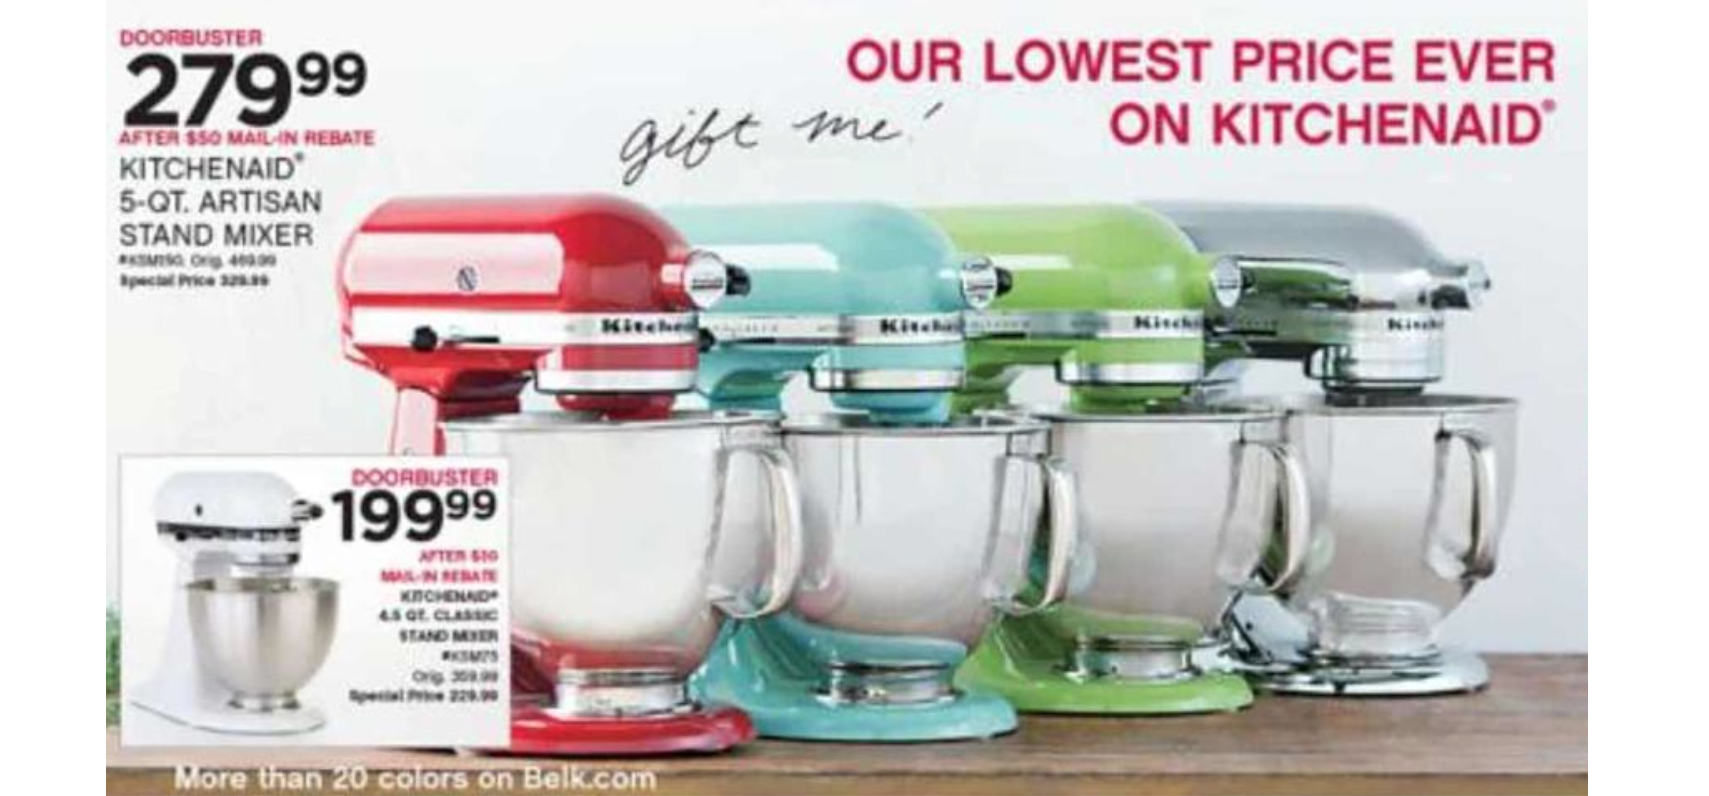 The Best Deal On A Kitchen Aid Mixer